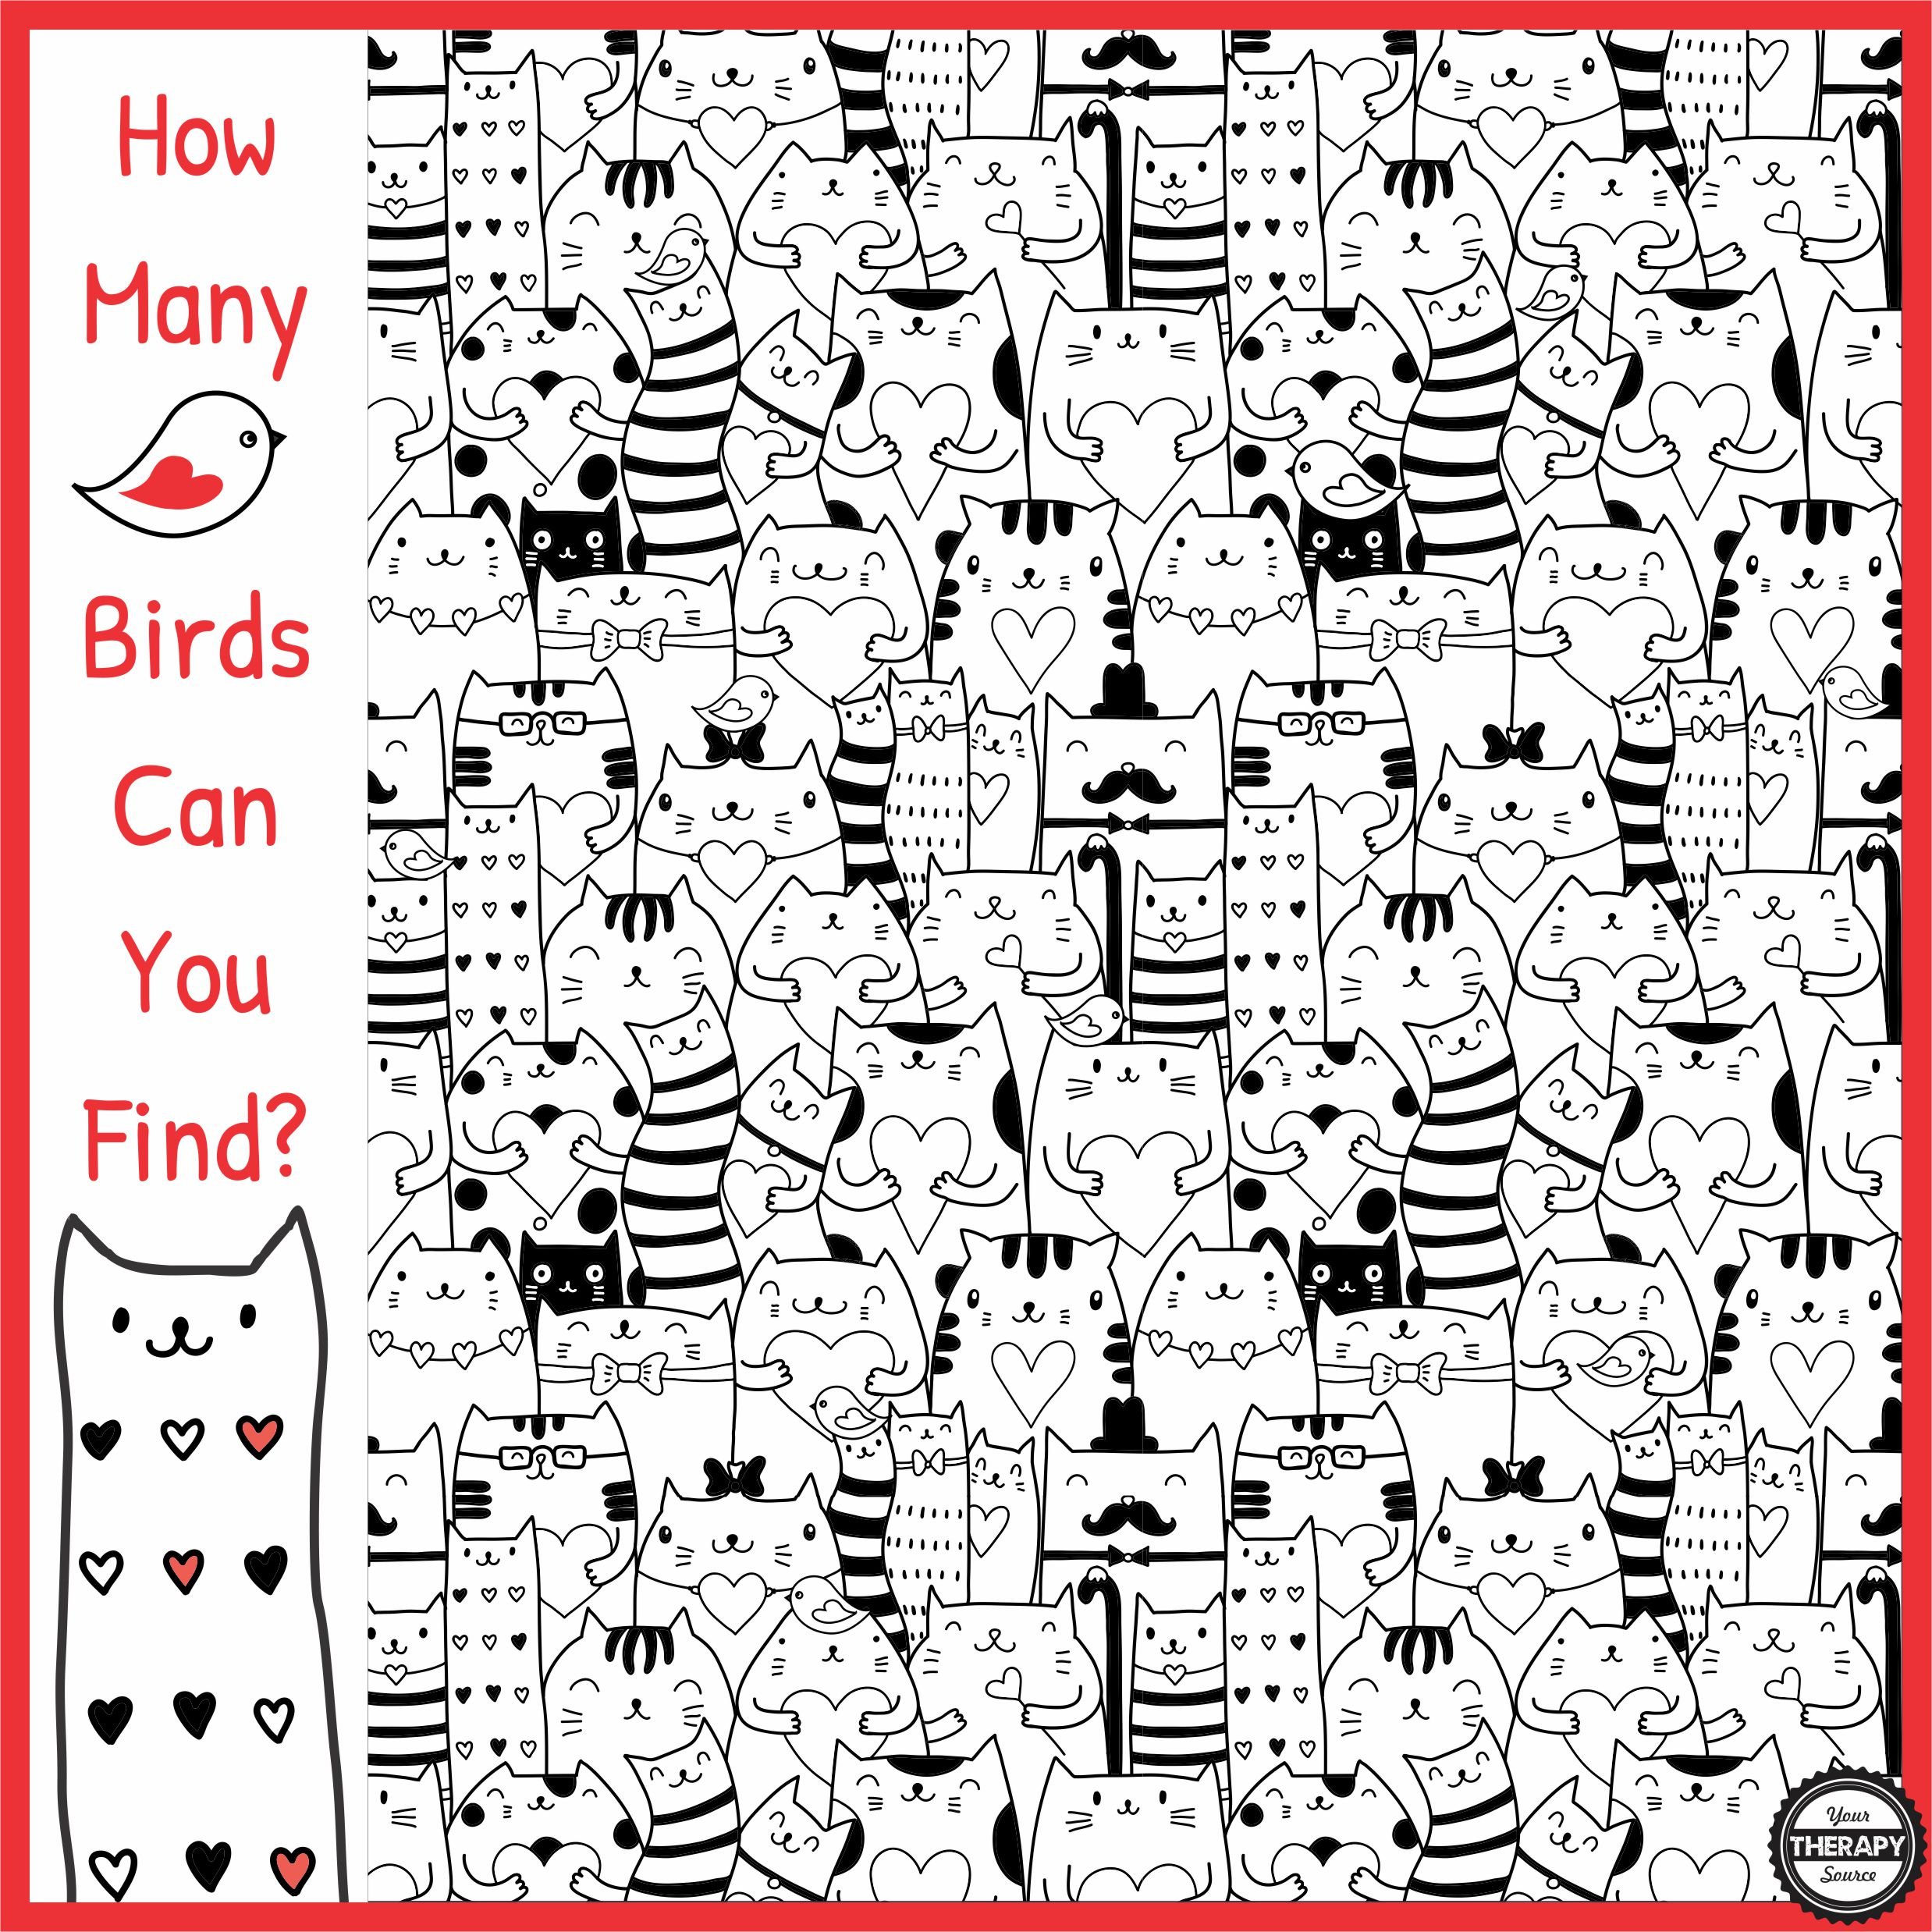 How Many Birds Can You Find Visual Perceptual Activity